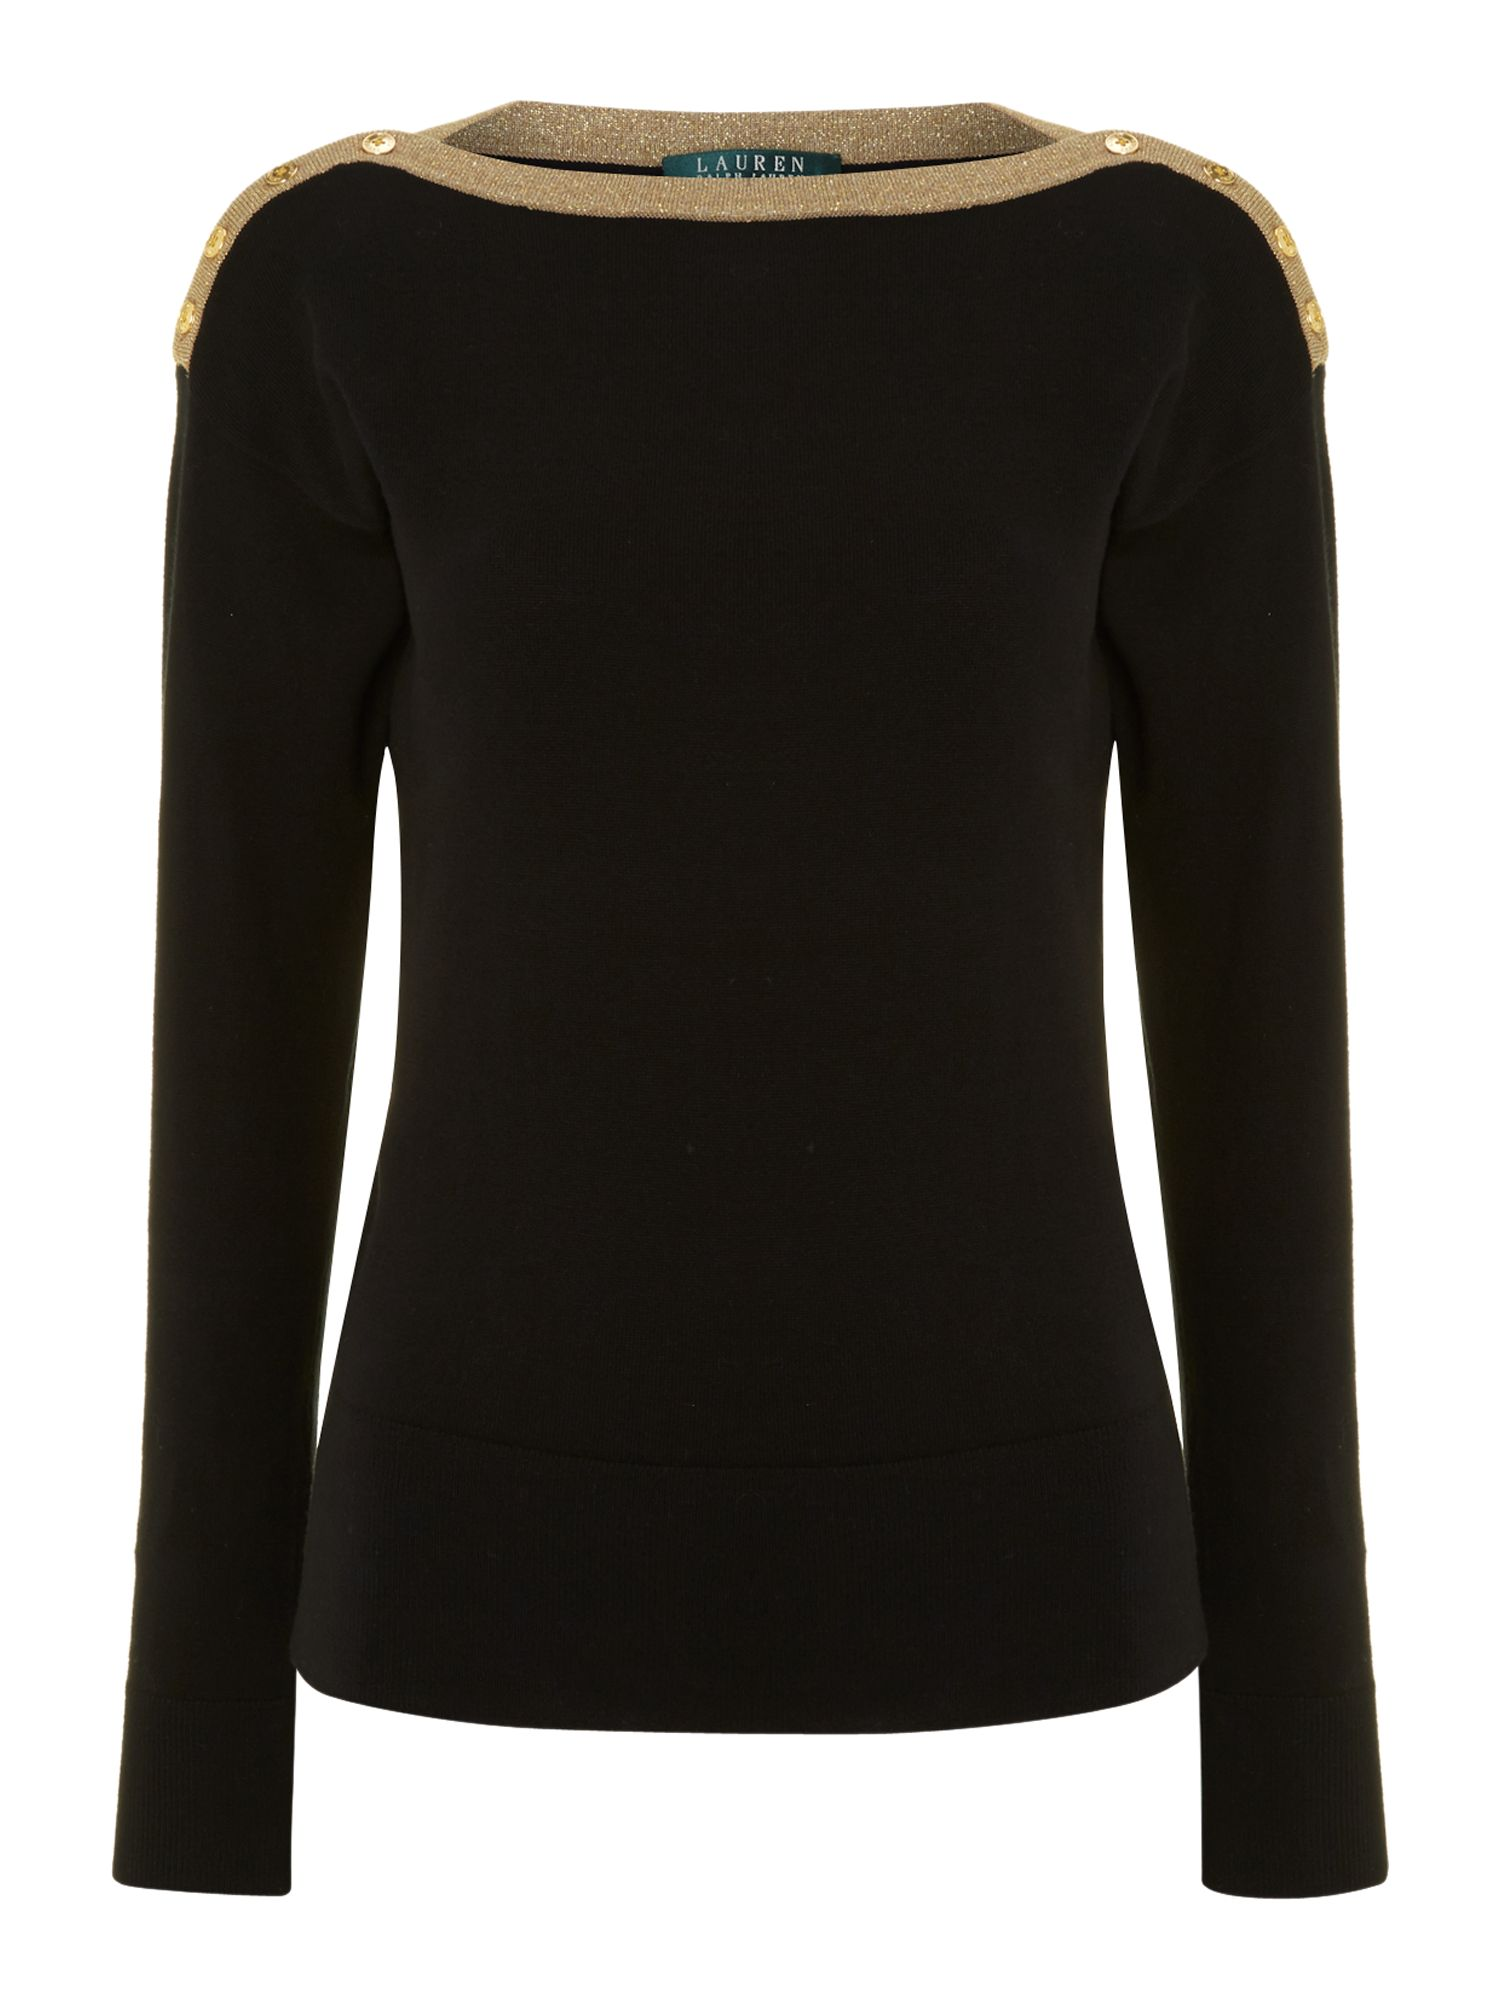 Long sleeved top with gold trim